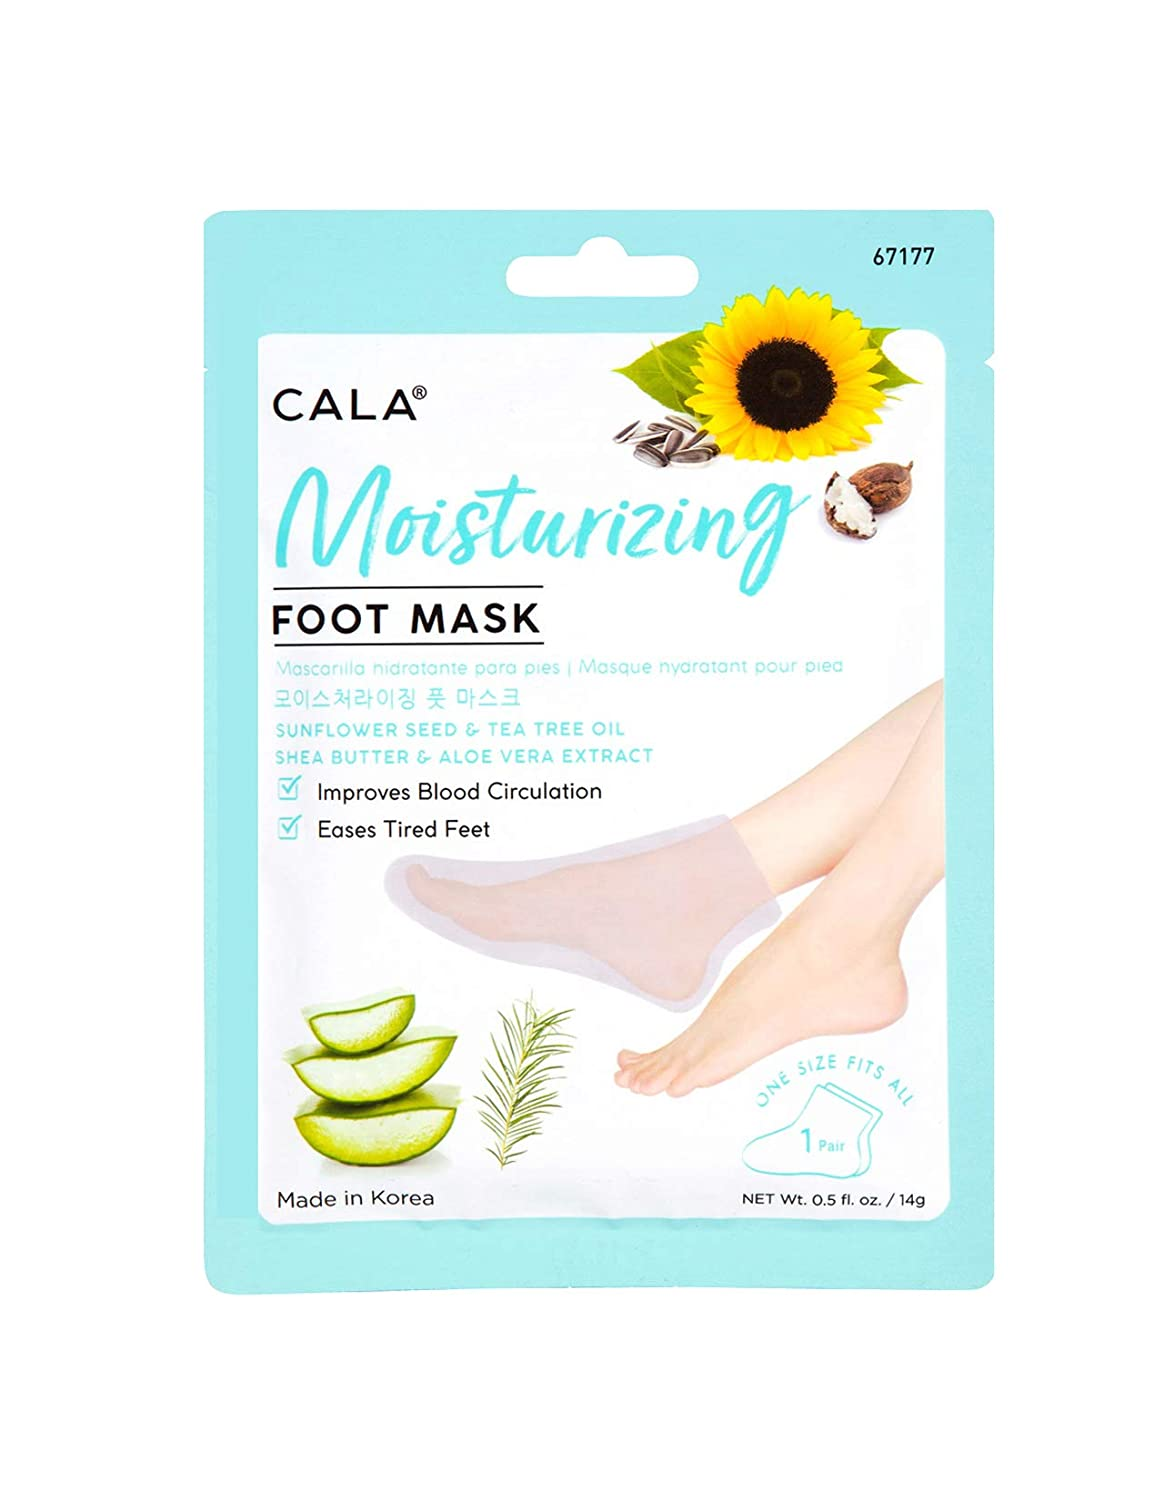 Cala Sunflower moisturizing foot mask 12 count, 12 Count